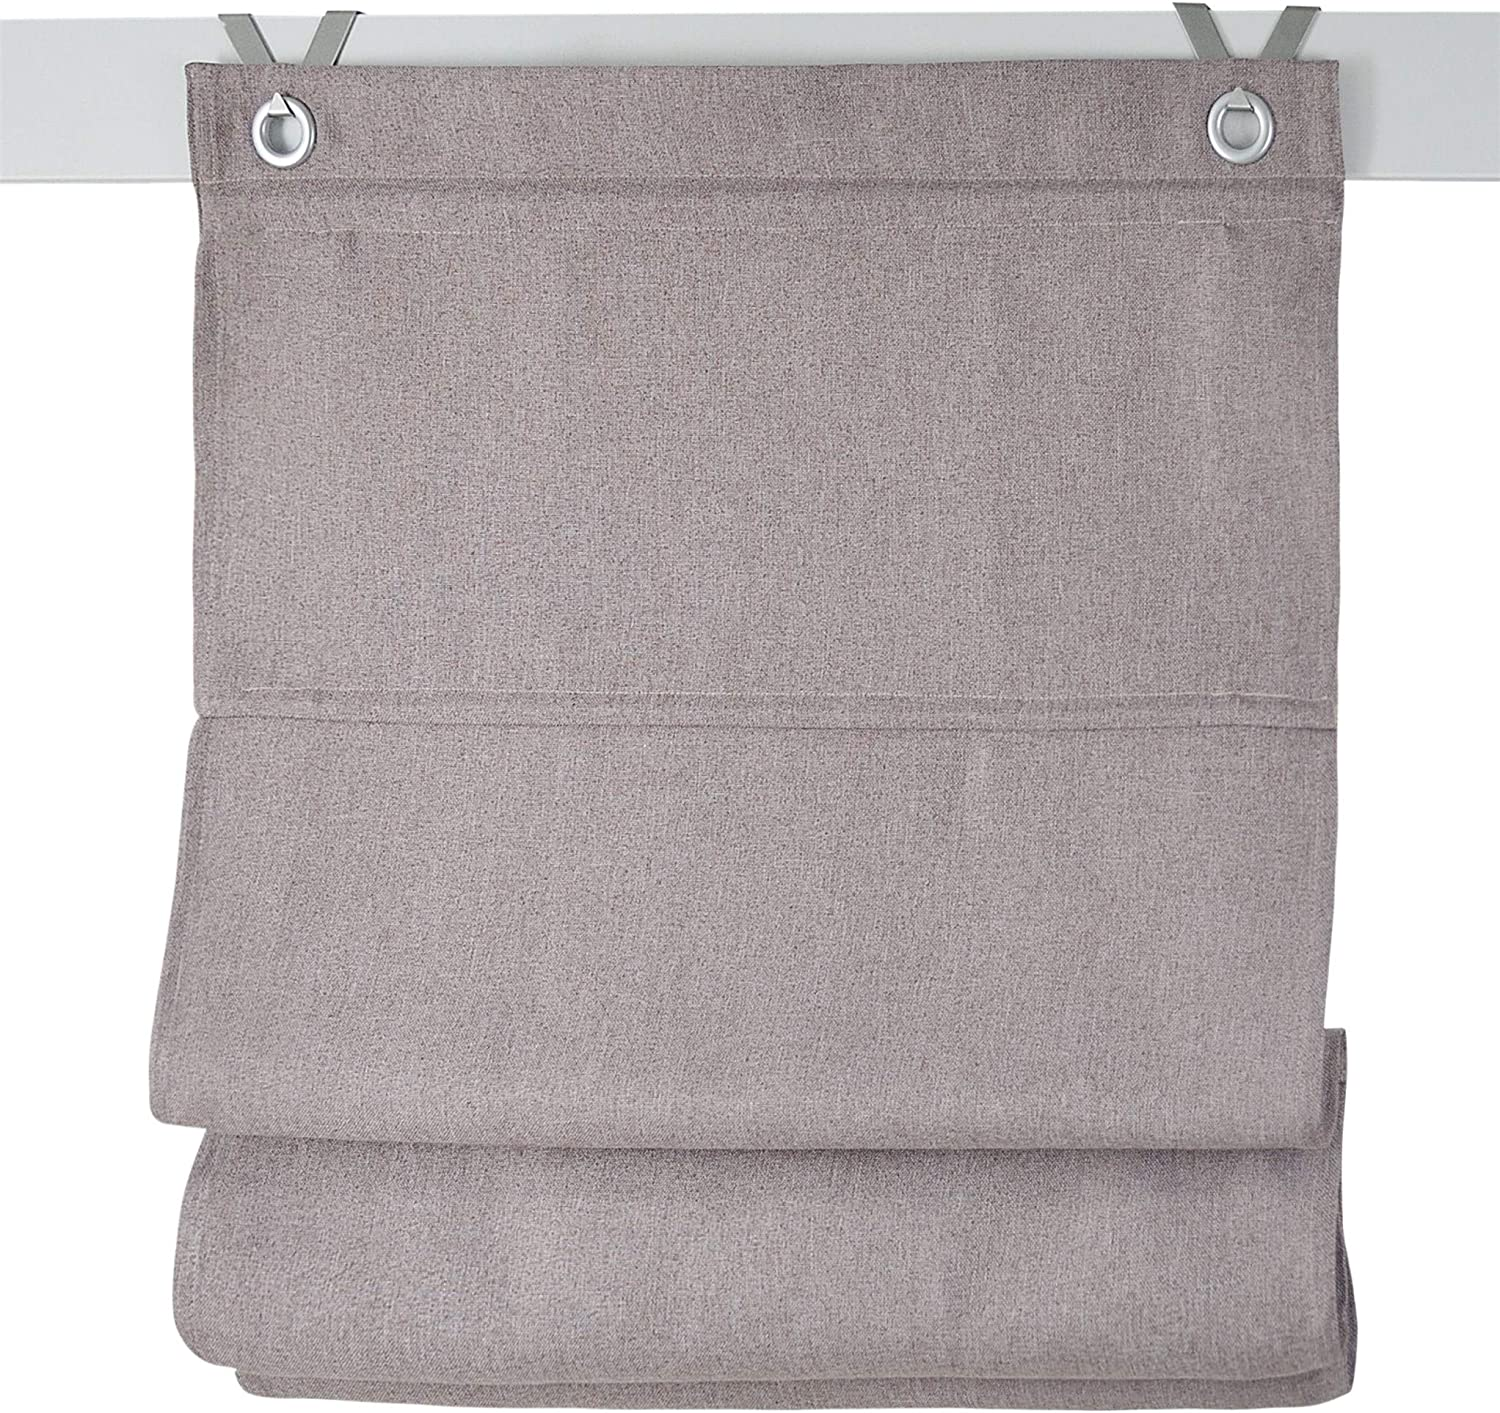 Kutti Dimout Blackout roman blind with grommets and hooks cream 60 x 130 cm